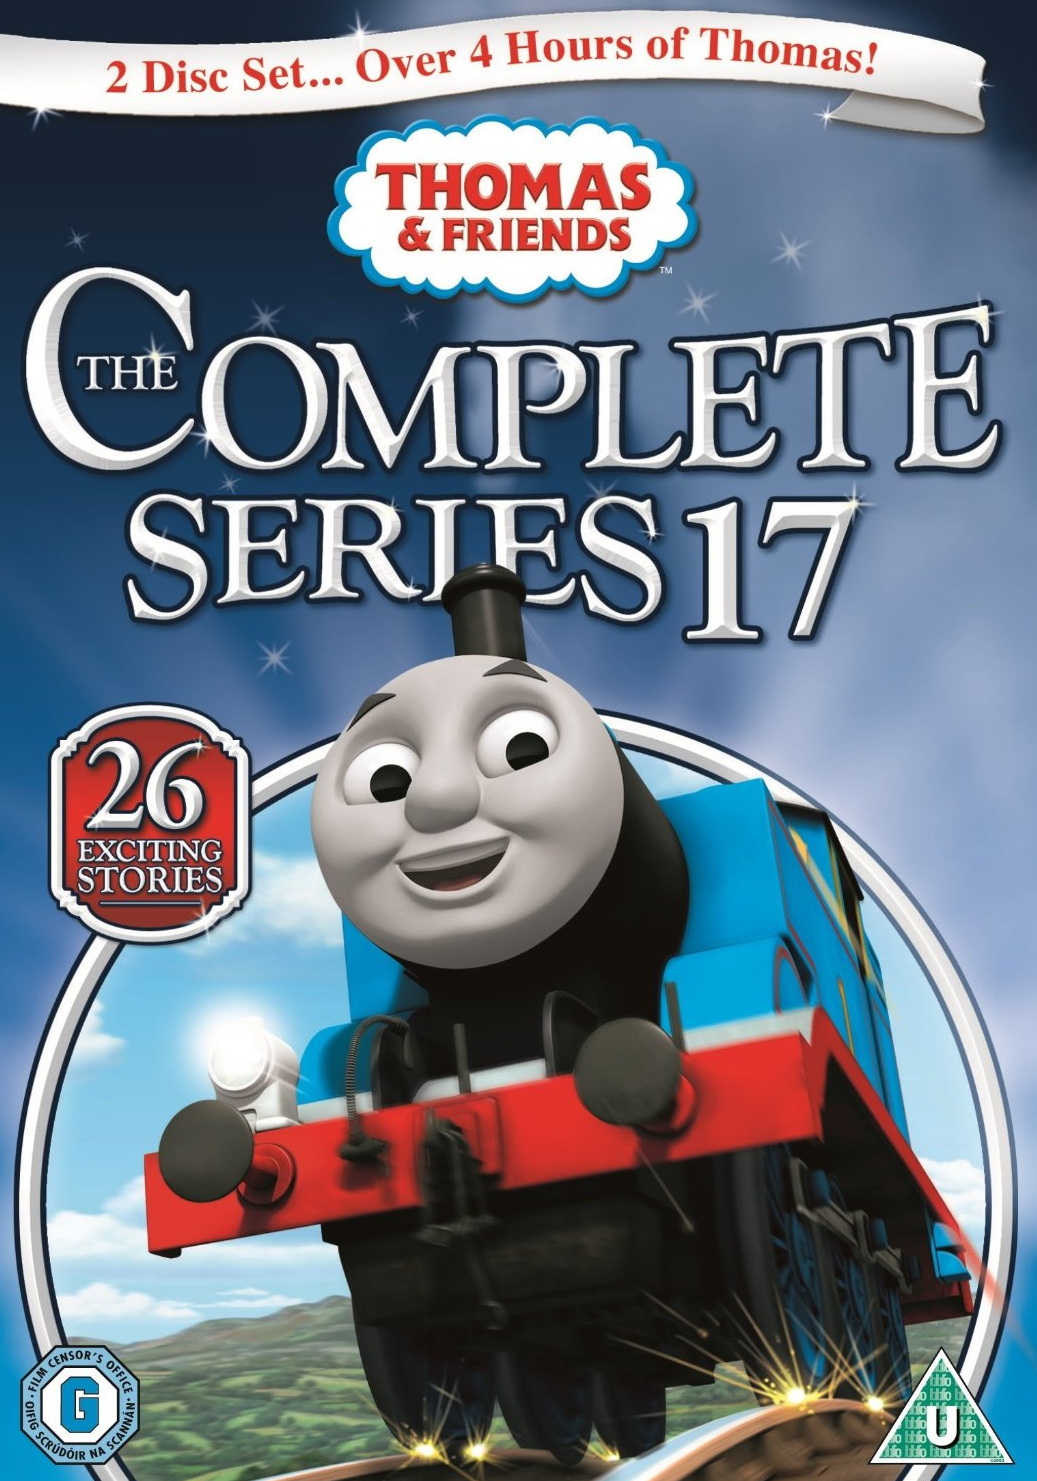 The Complete Series 17